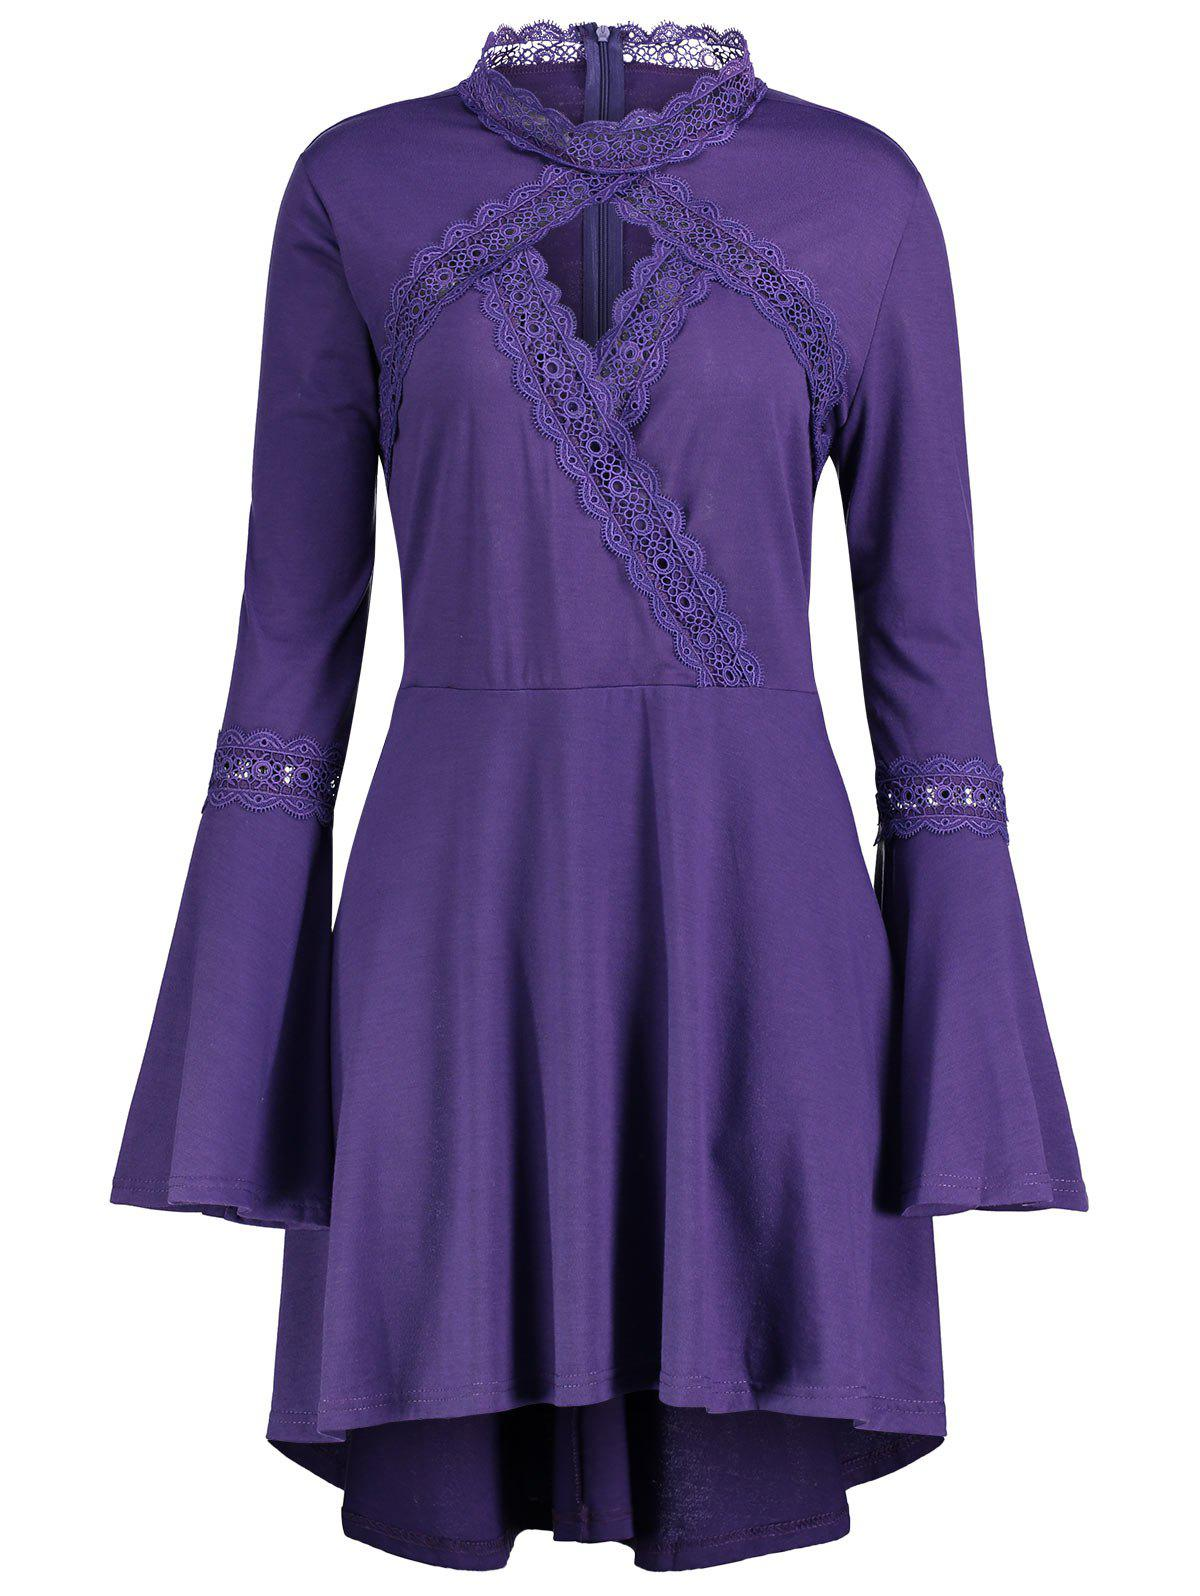 Cut Out Plus Size Long Sleeve Tunic Top - PURPLE 4XL